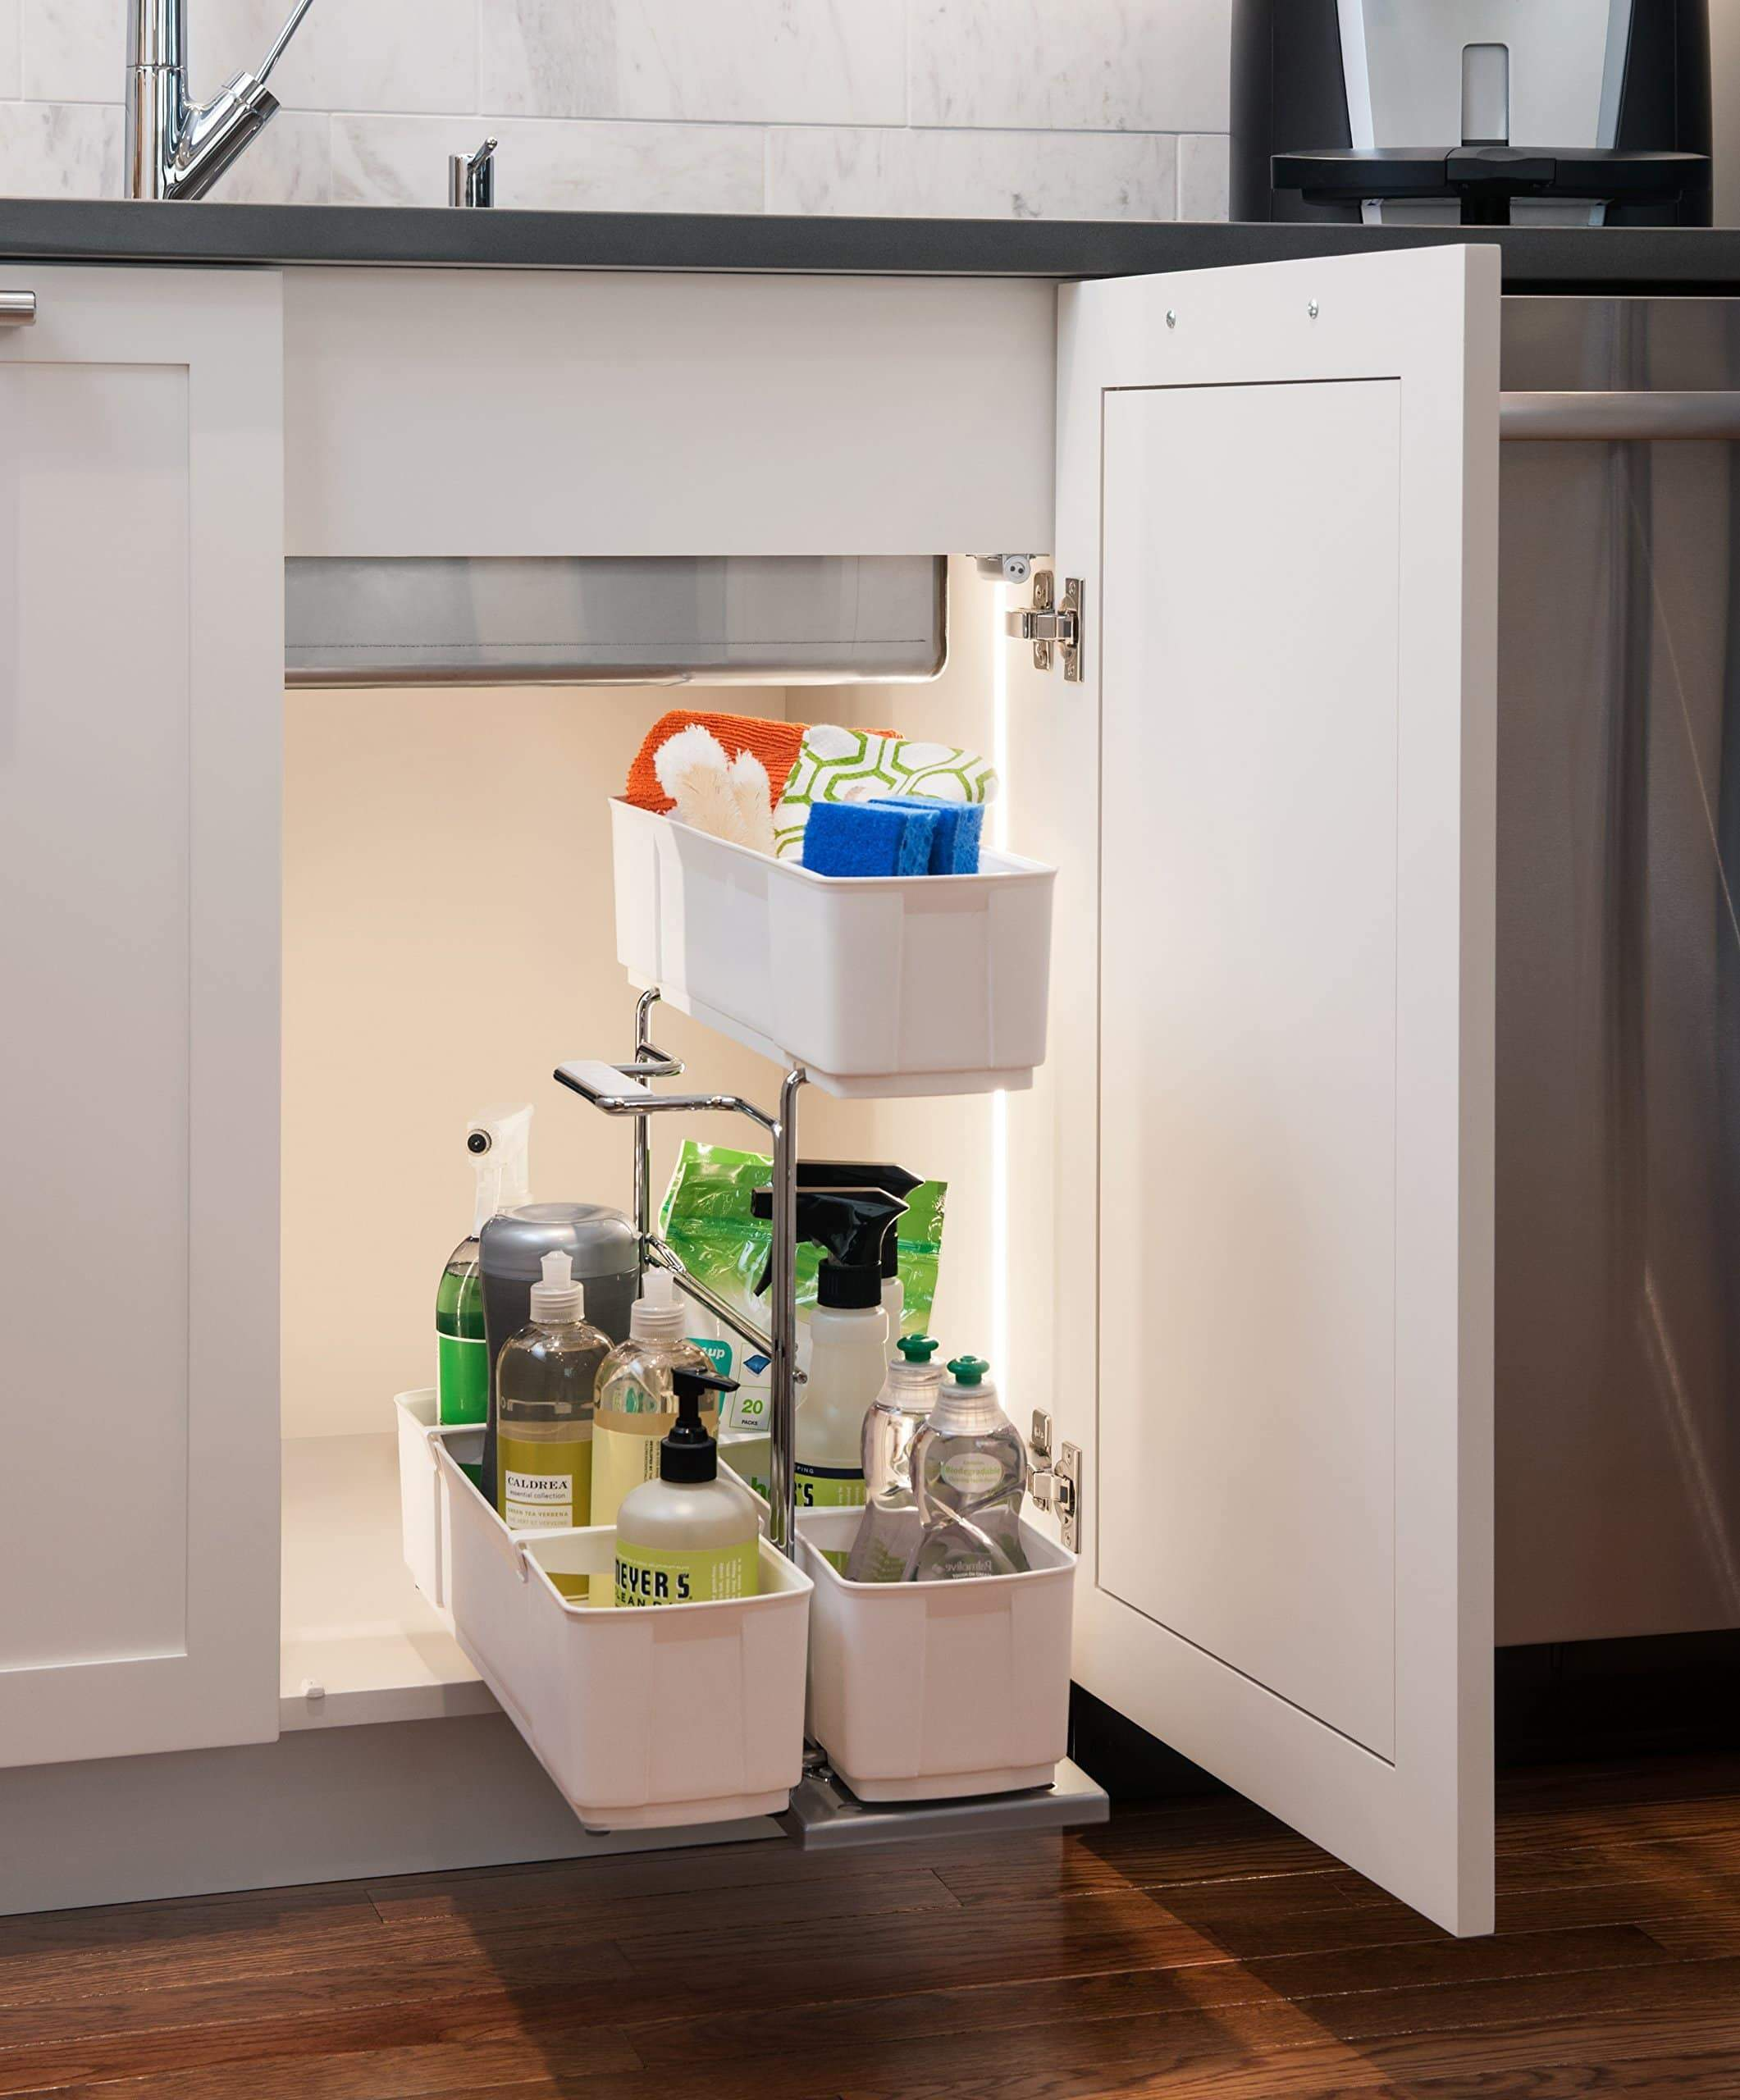 Heavy duty cleaningagent under sink organizer chrome steel and white sliding pull out base cabinet storage removable carrying caddy dishwasher safe easy install